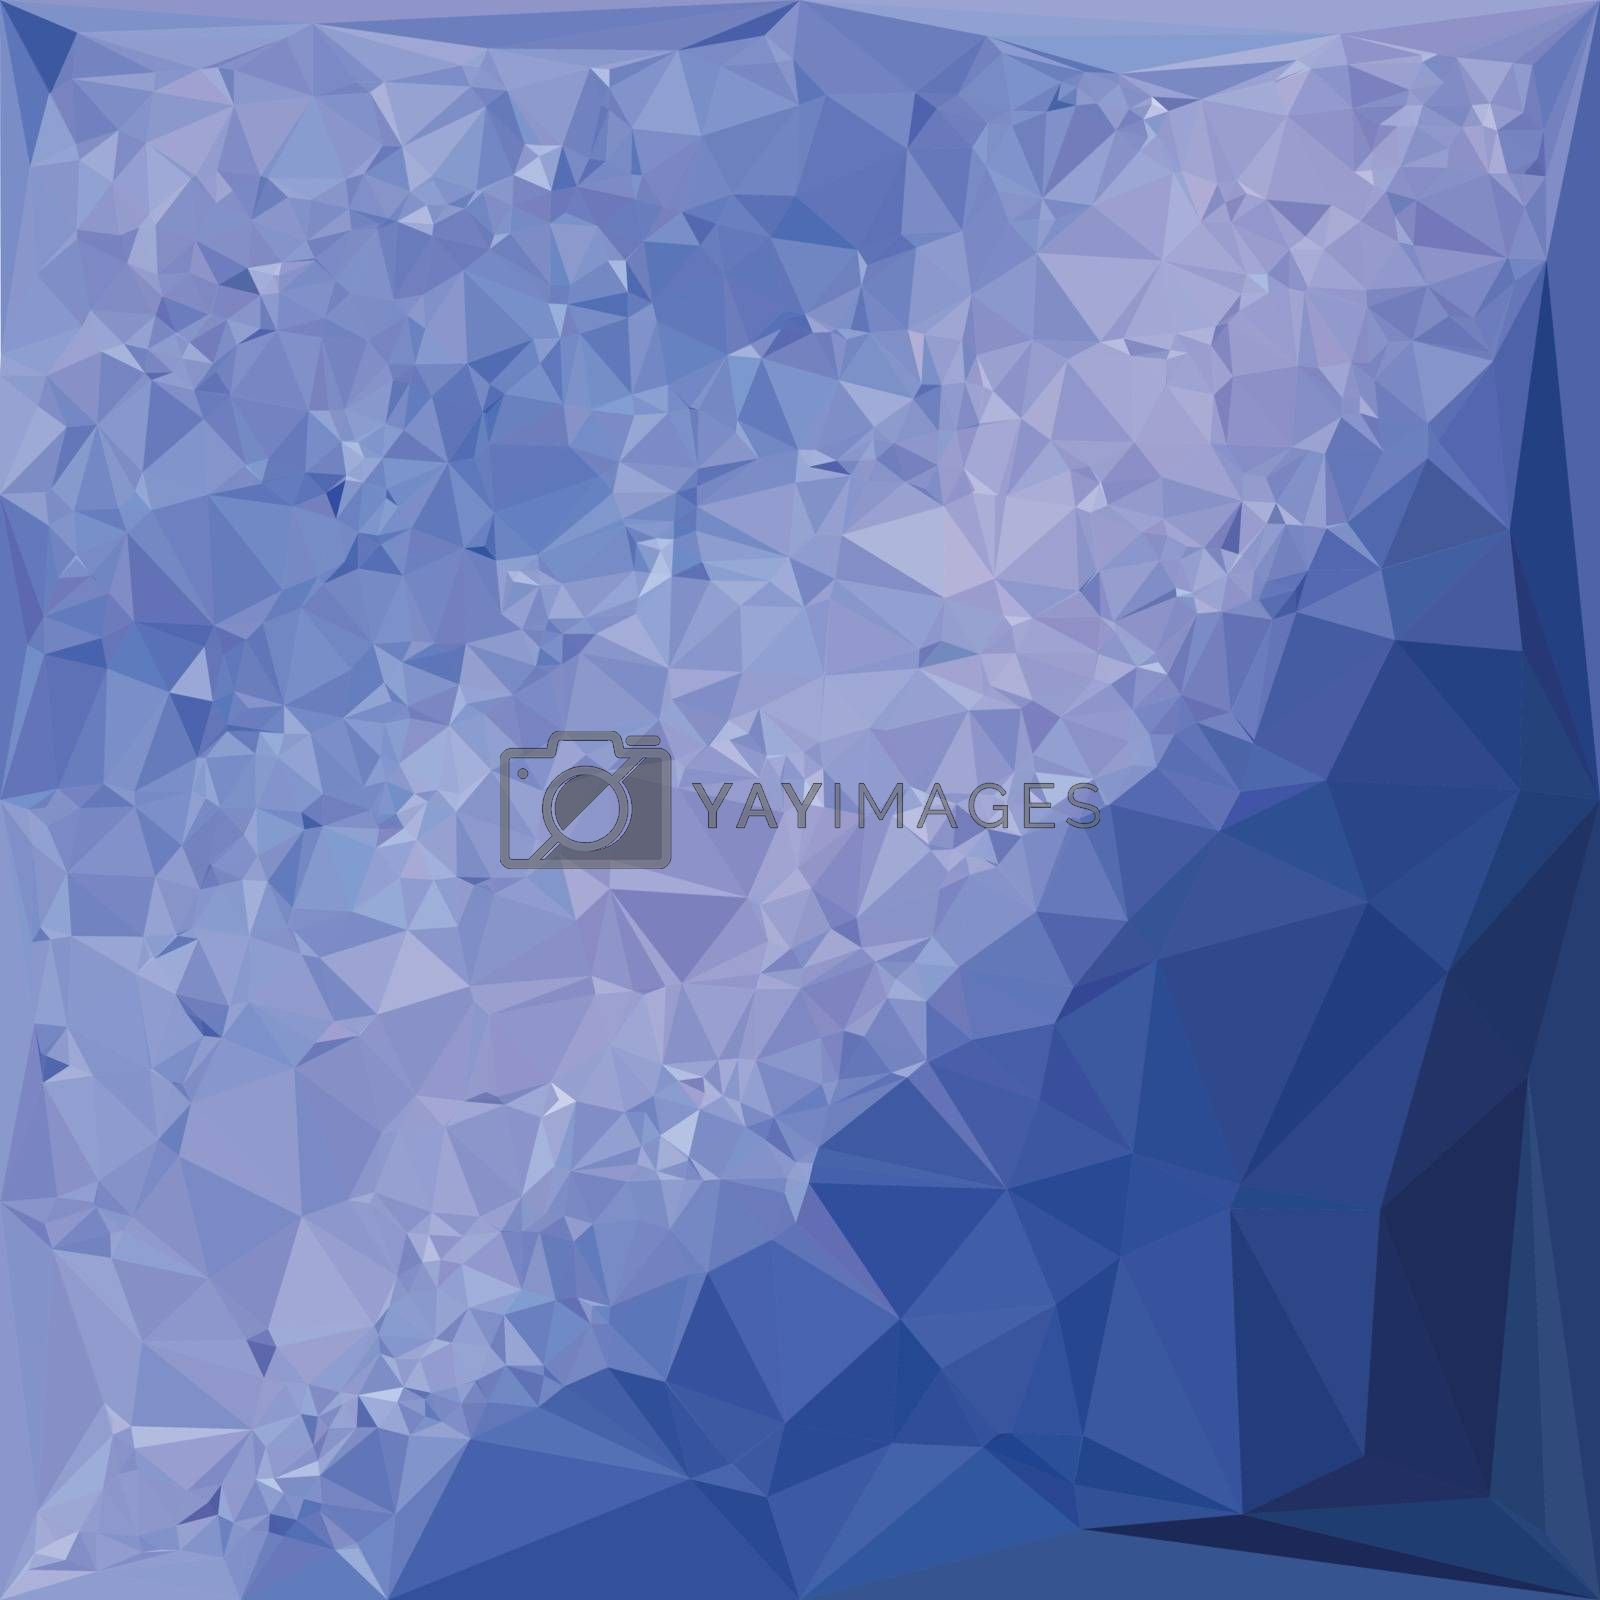 Low polygon style illustration of a steel blue abstract geometric background.